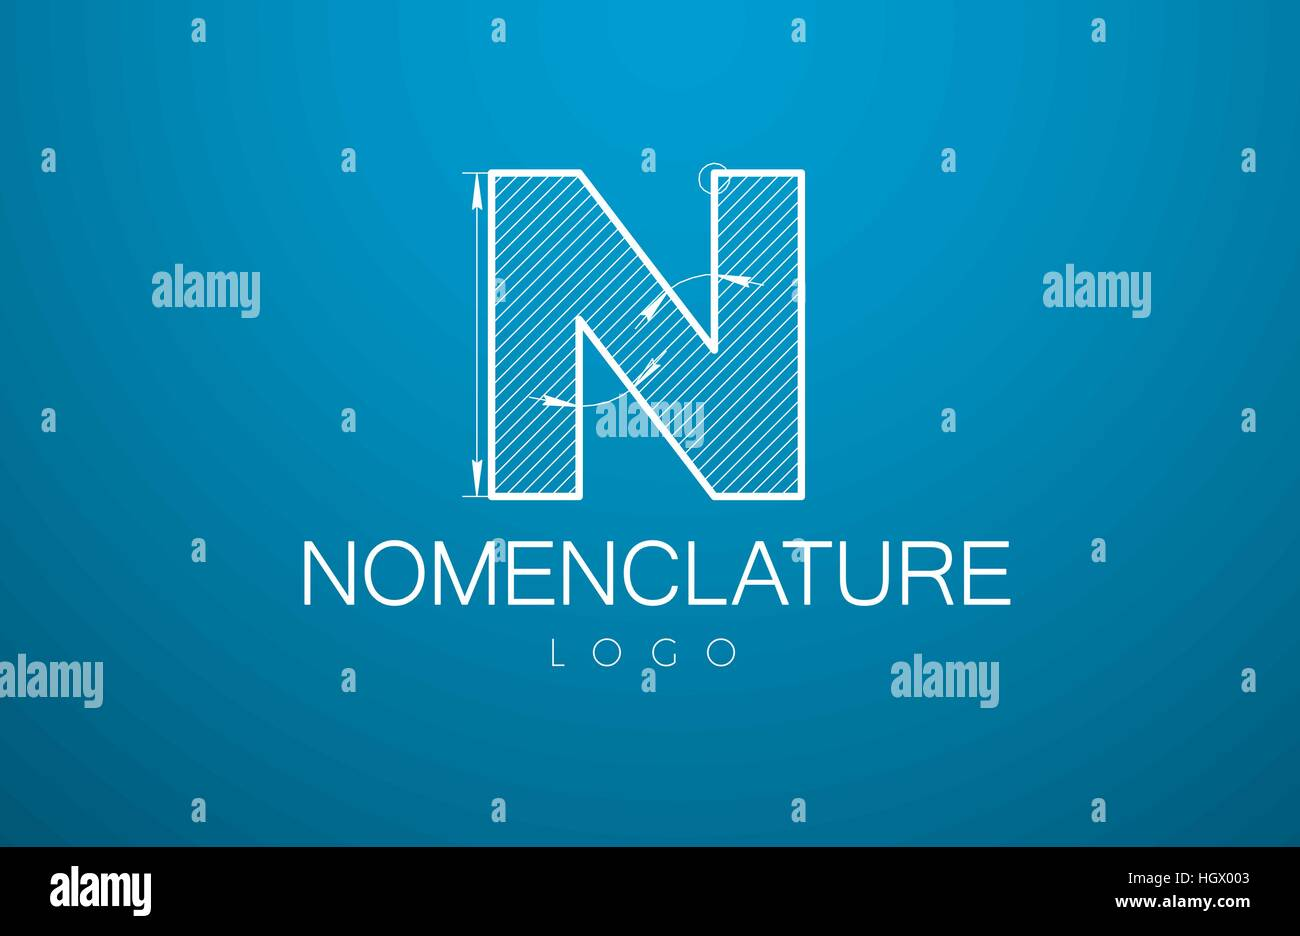 Logo Template Letter N In The Style Of A Technical Drawing Sign Design And Text Nomenclature With Dimension Lines Vector Illustration